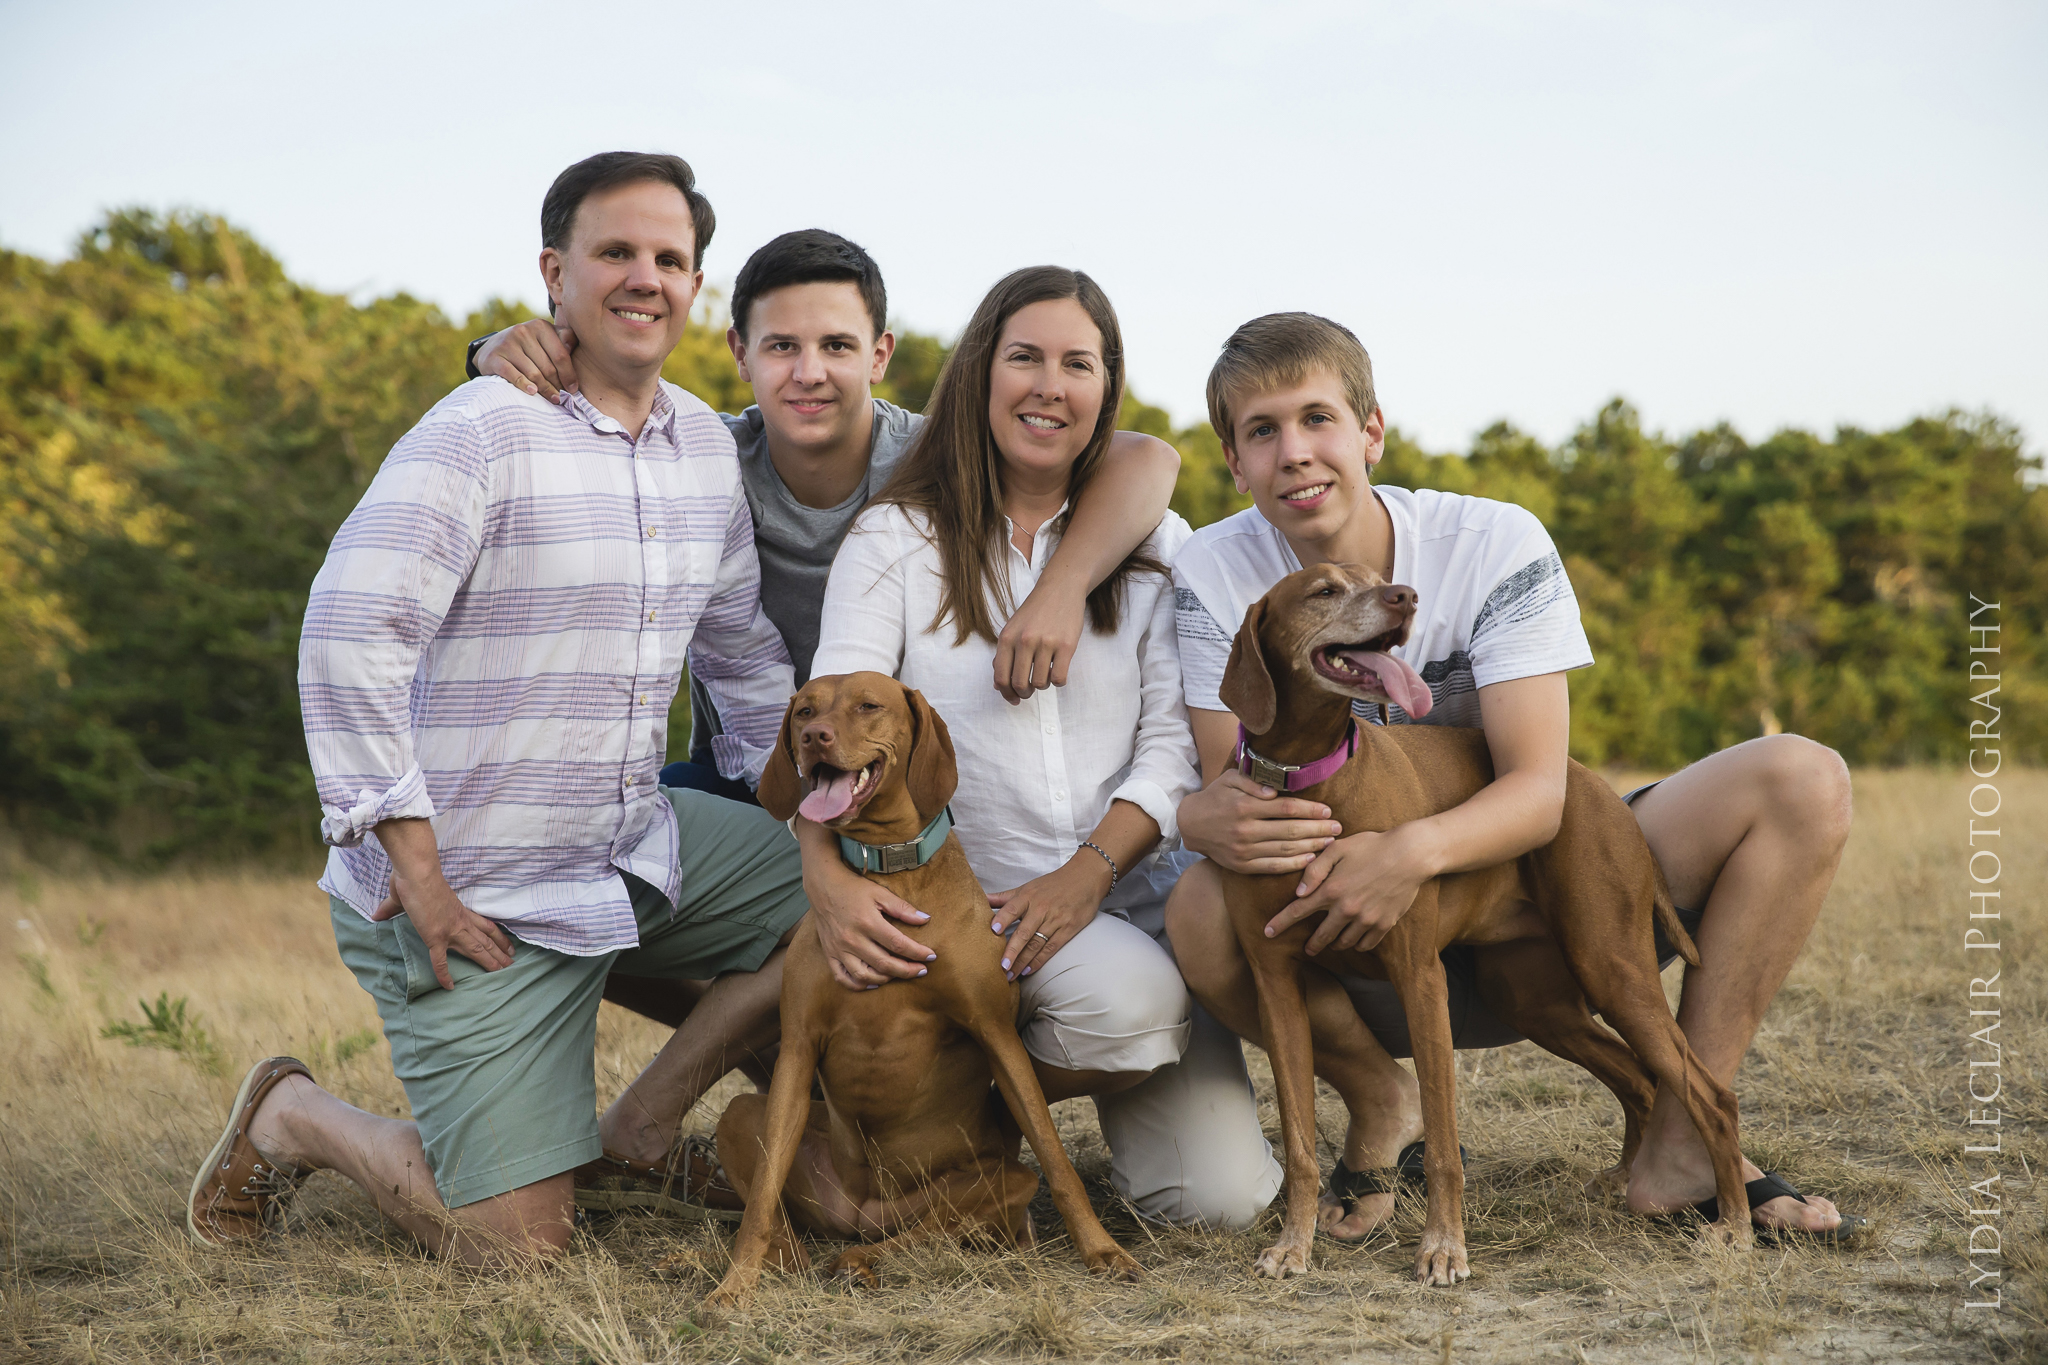 Rustic woods casual family portrait with dogs at Thompson Field in Harwich, MA